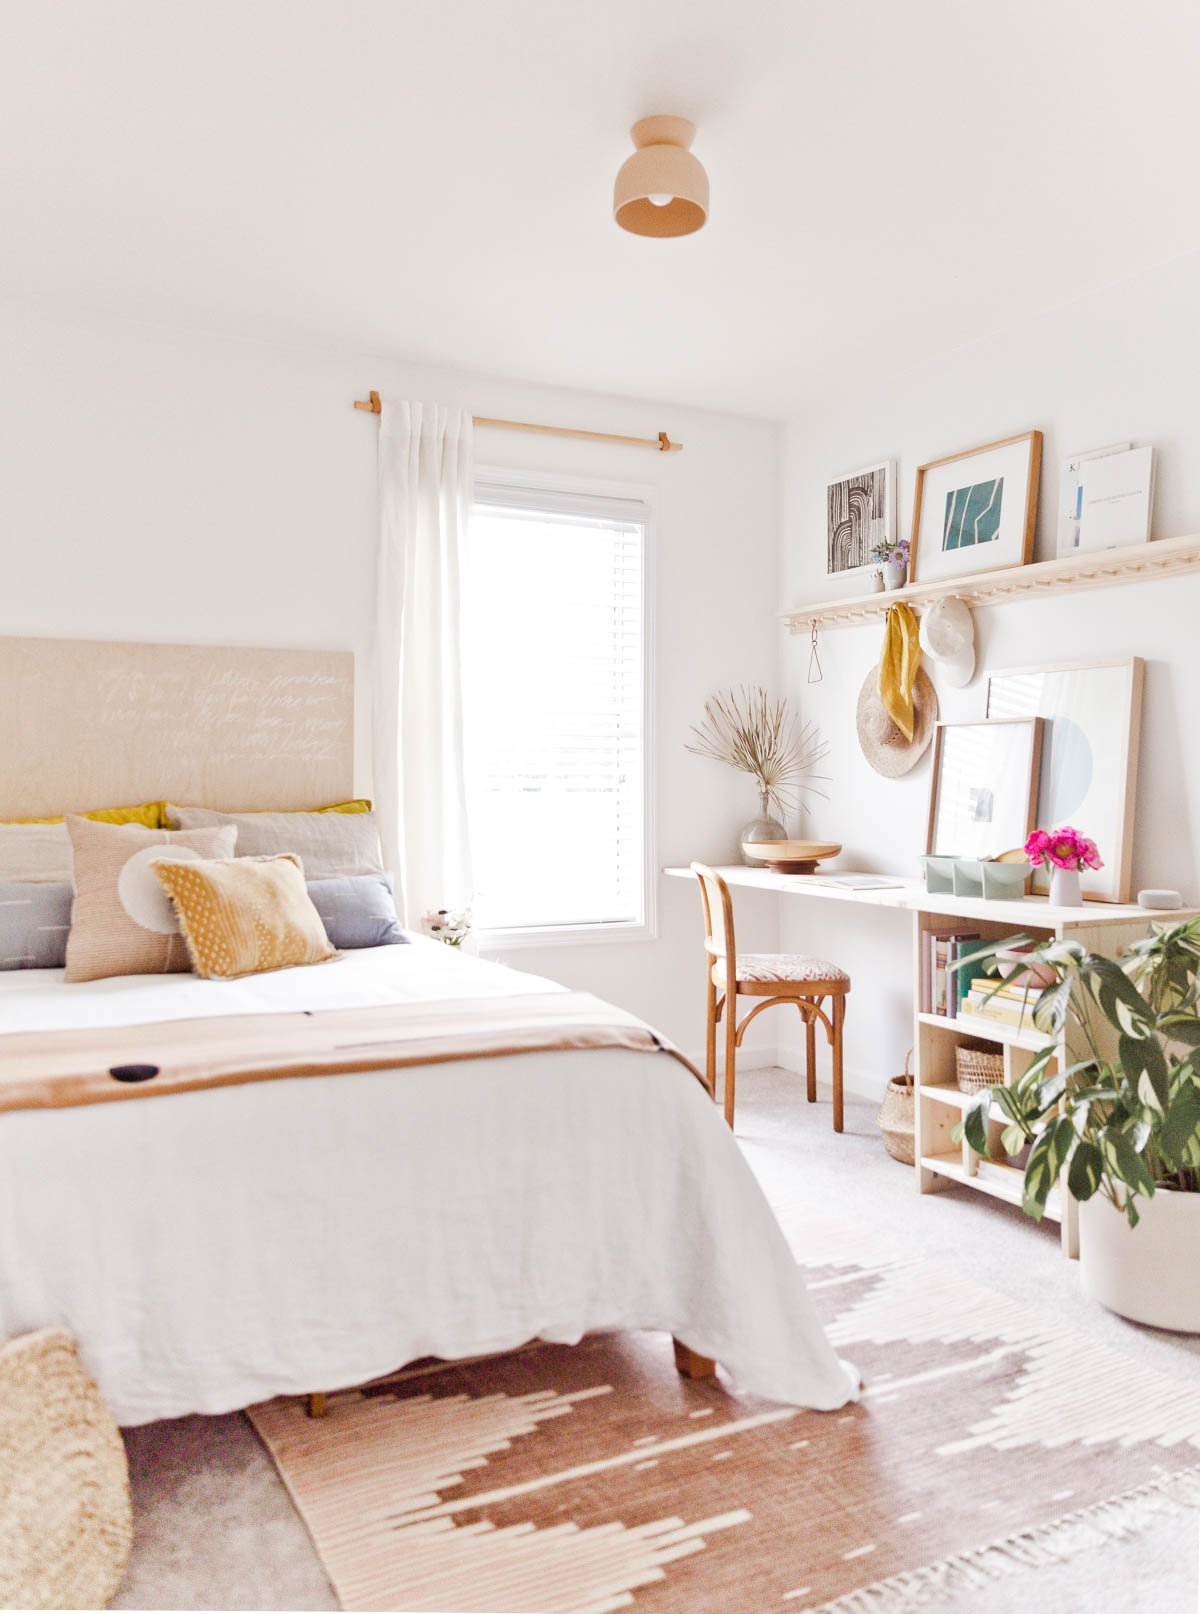 Room Reveal: A Guest Room / Home Office with Renter Friendly Design  Solutions - Paper and Stitch